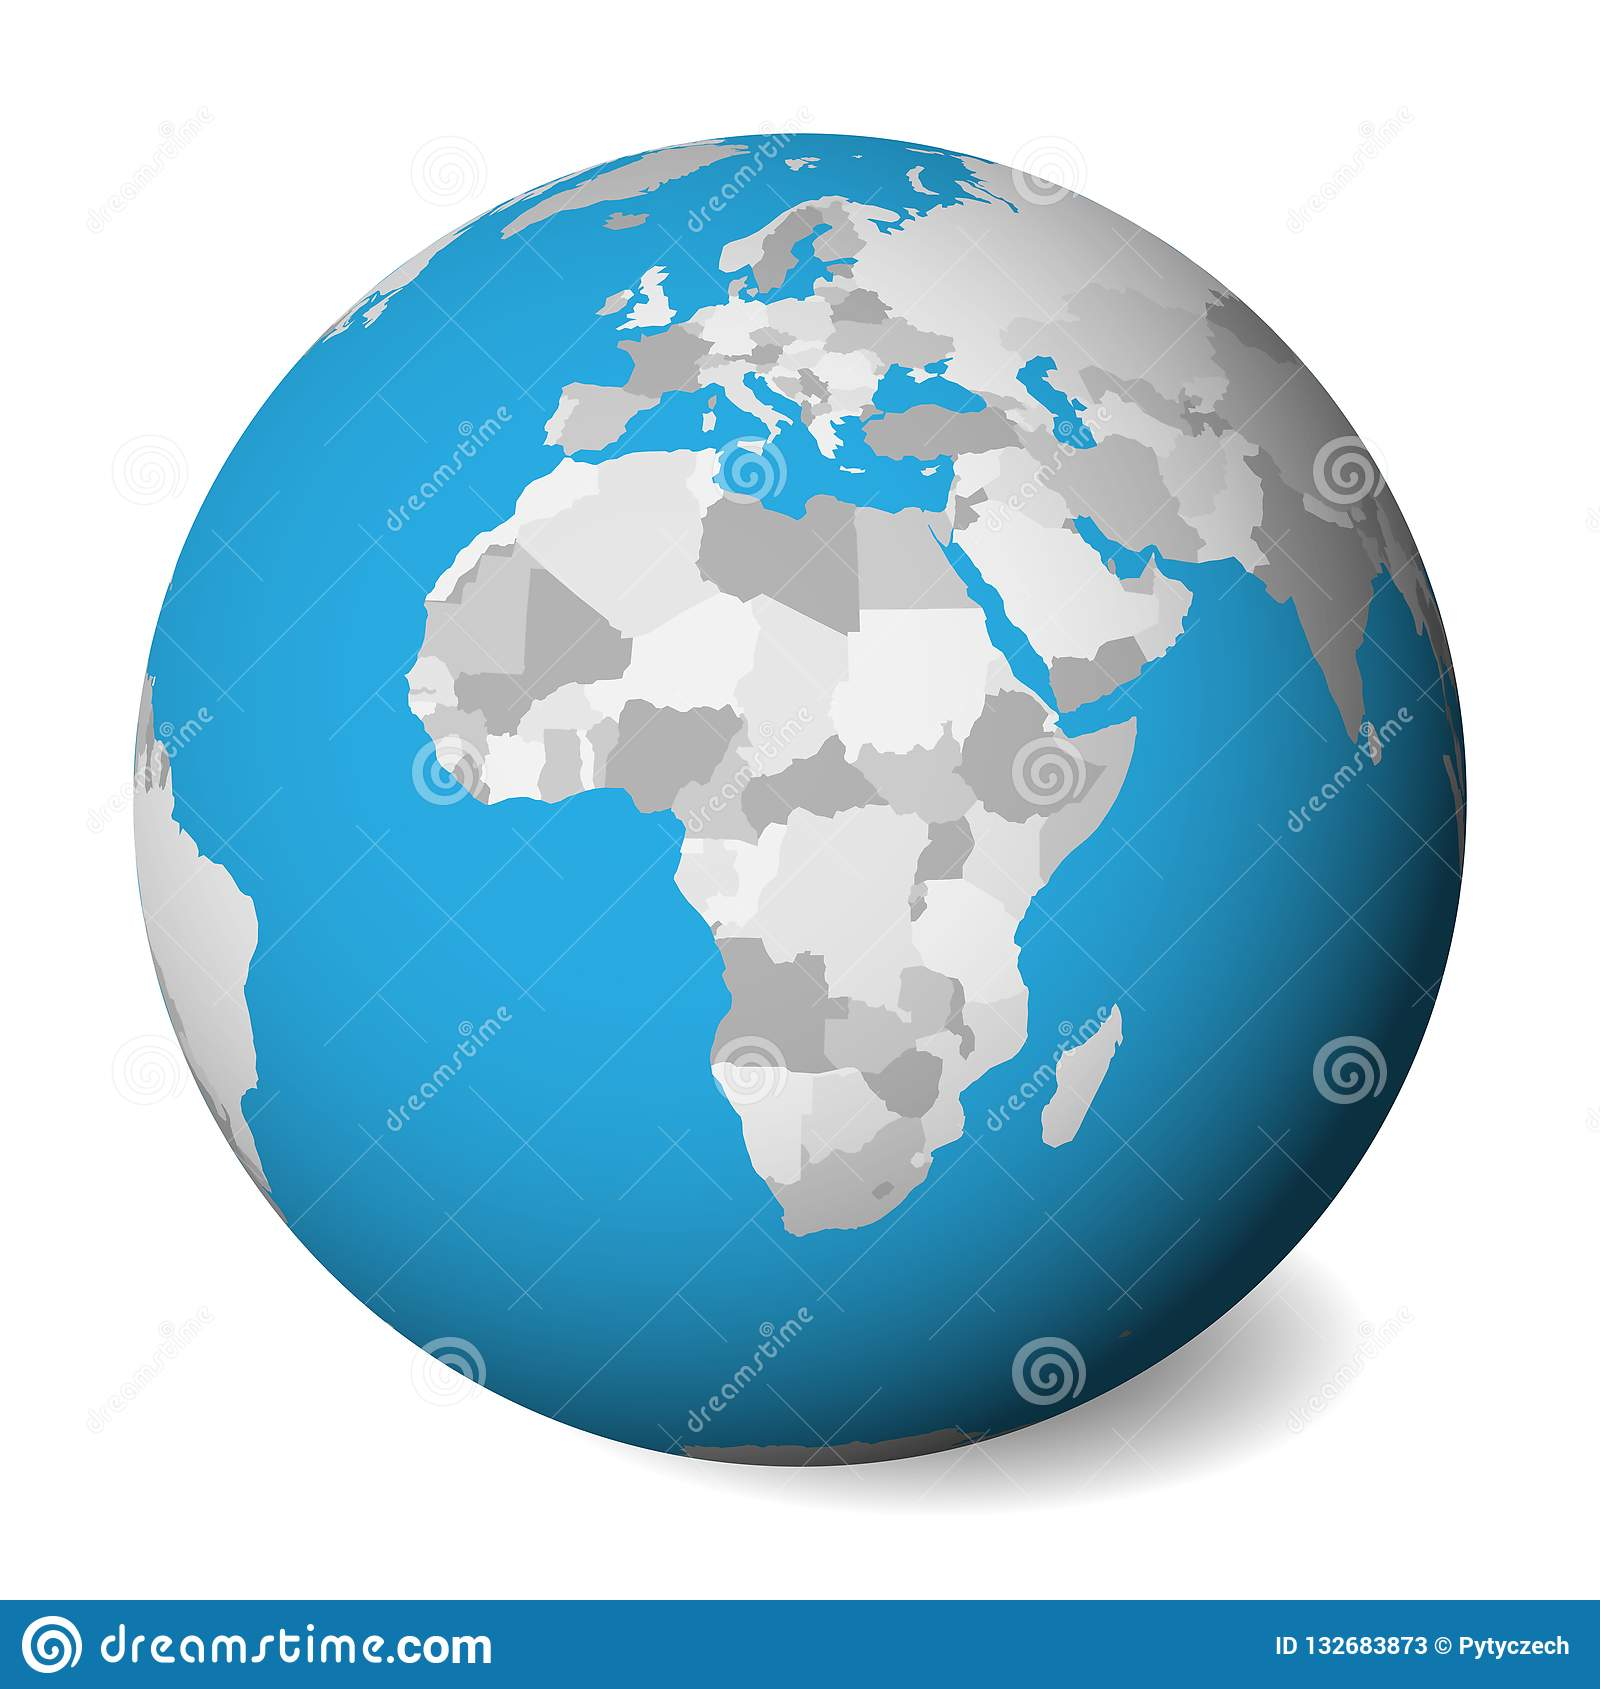 Blank Political Map Of Africa. 3D Earth Globe With Blue ... on alexandria map, eclipse map, love map, america map, fiction map,